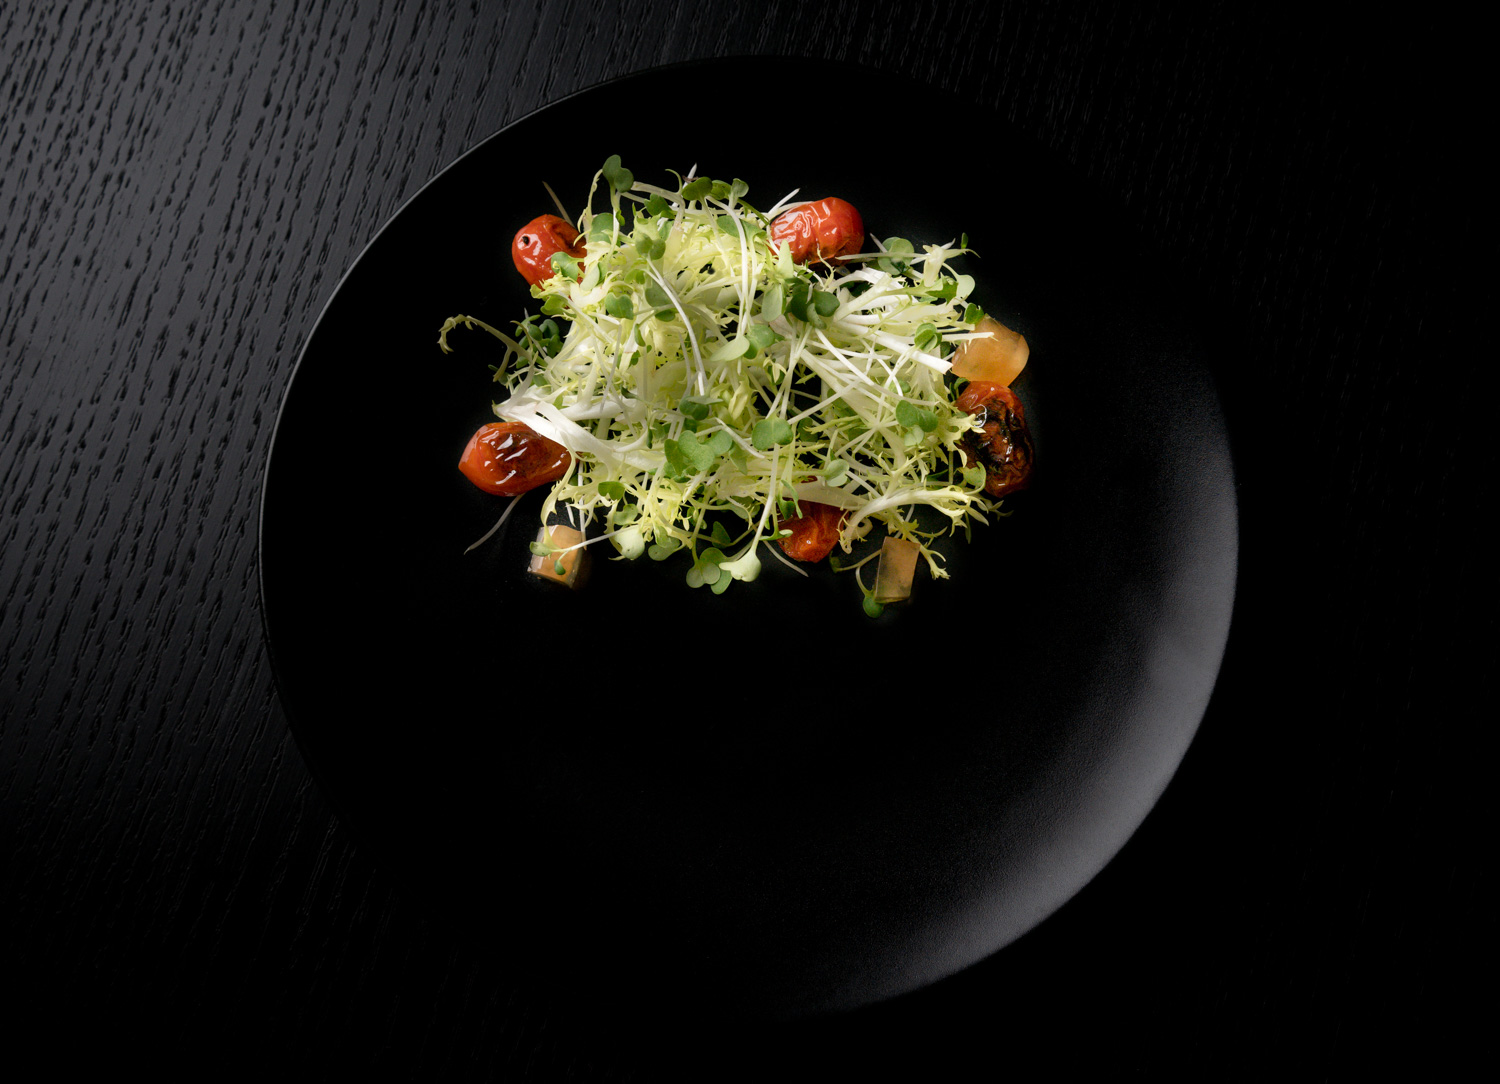 commercial-food-photography-san-francisco-restaurant-salad-by-afewgooodclicks